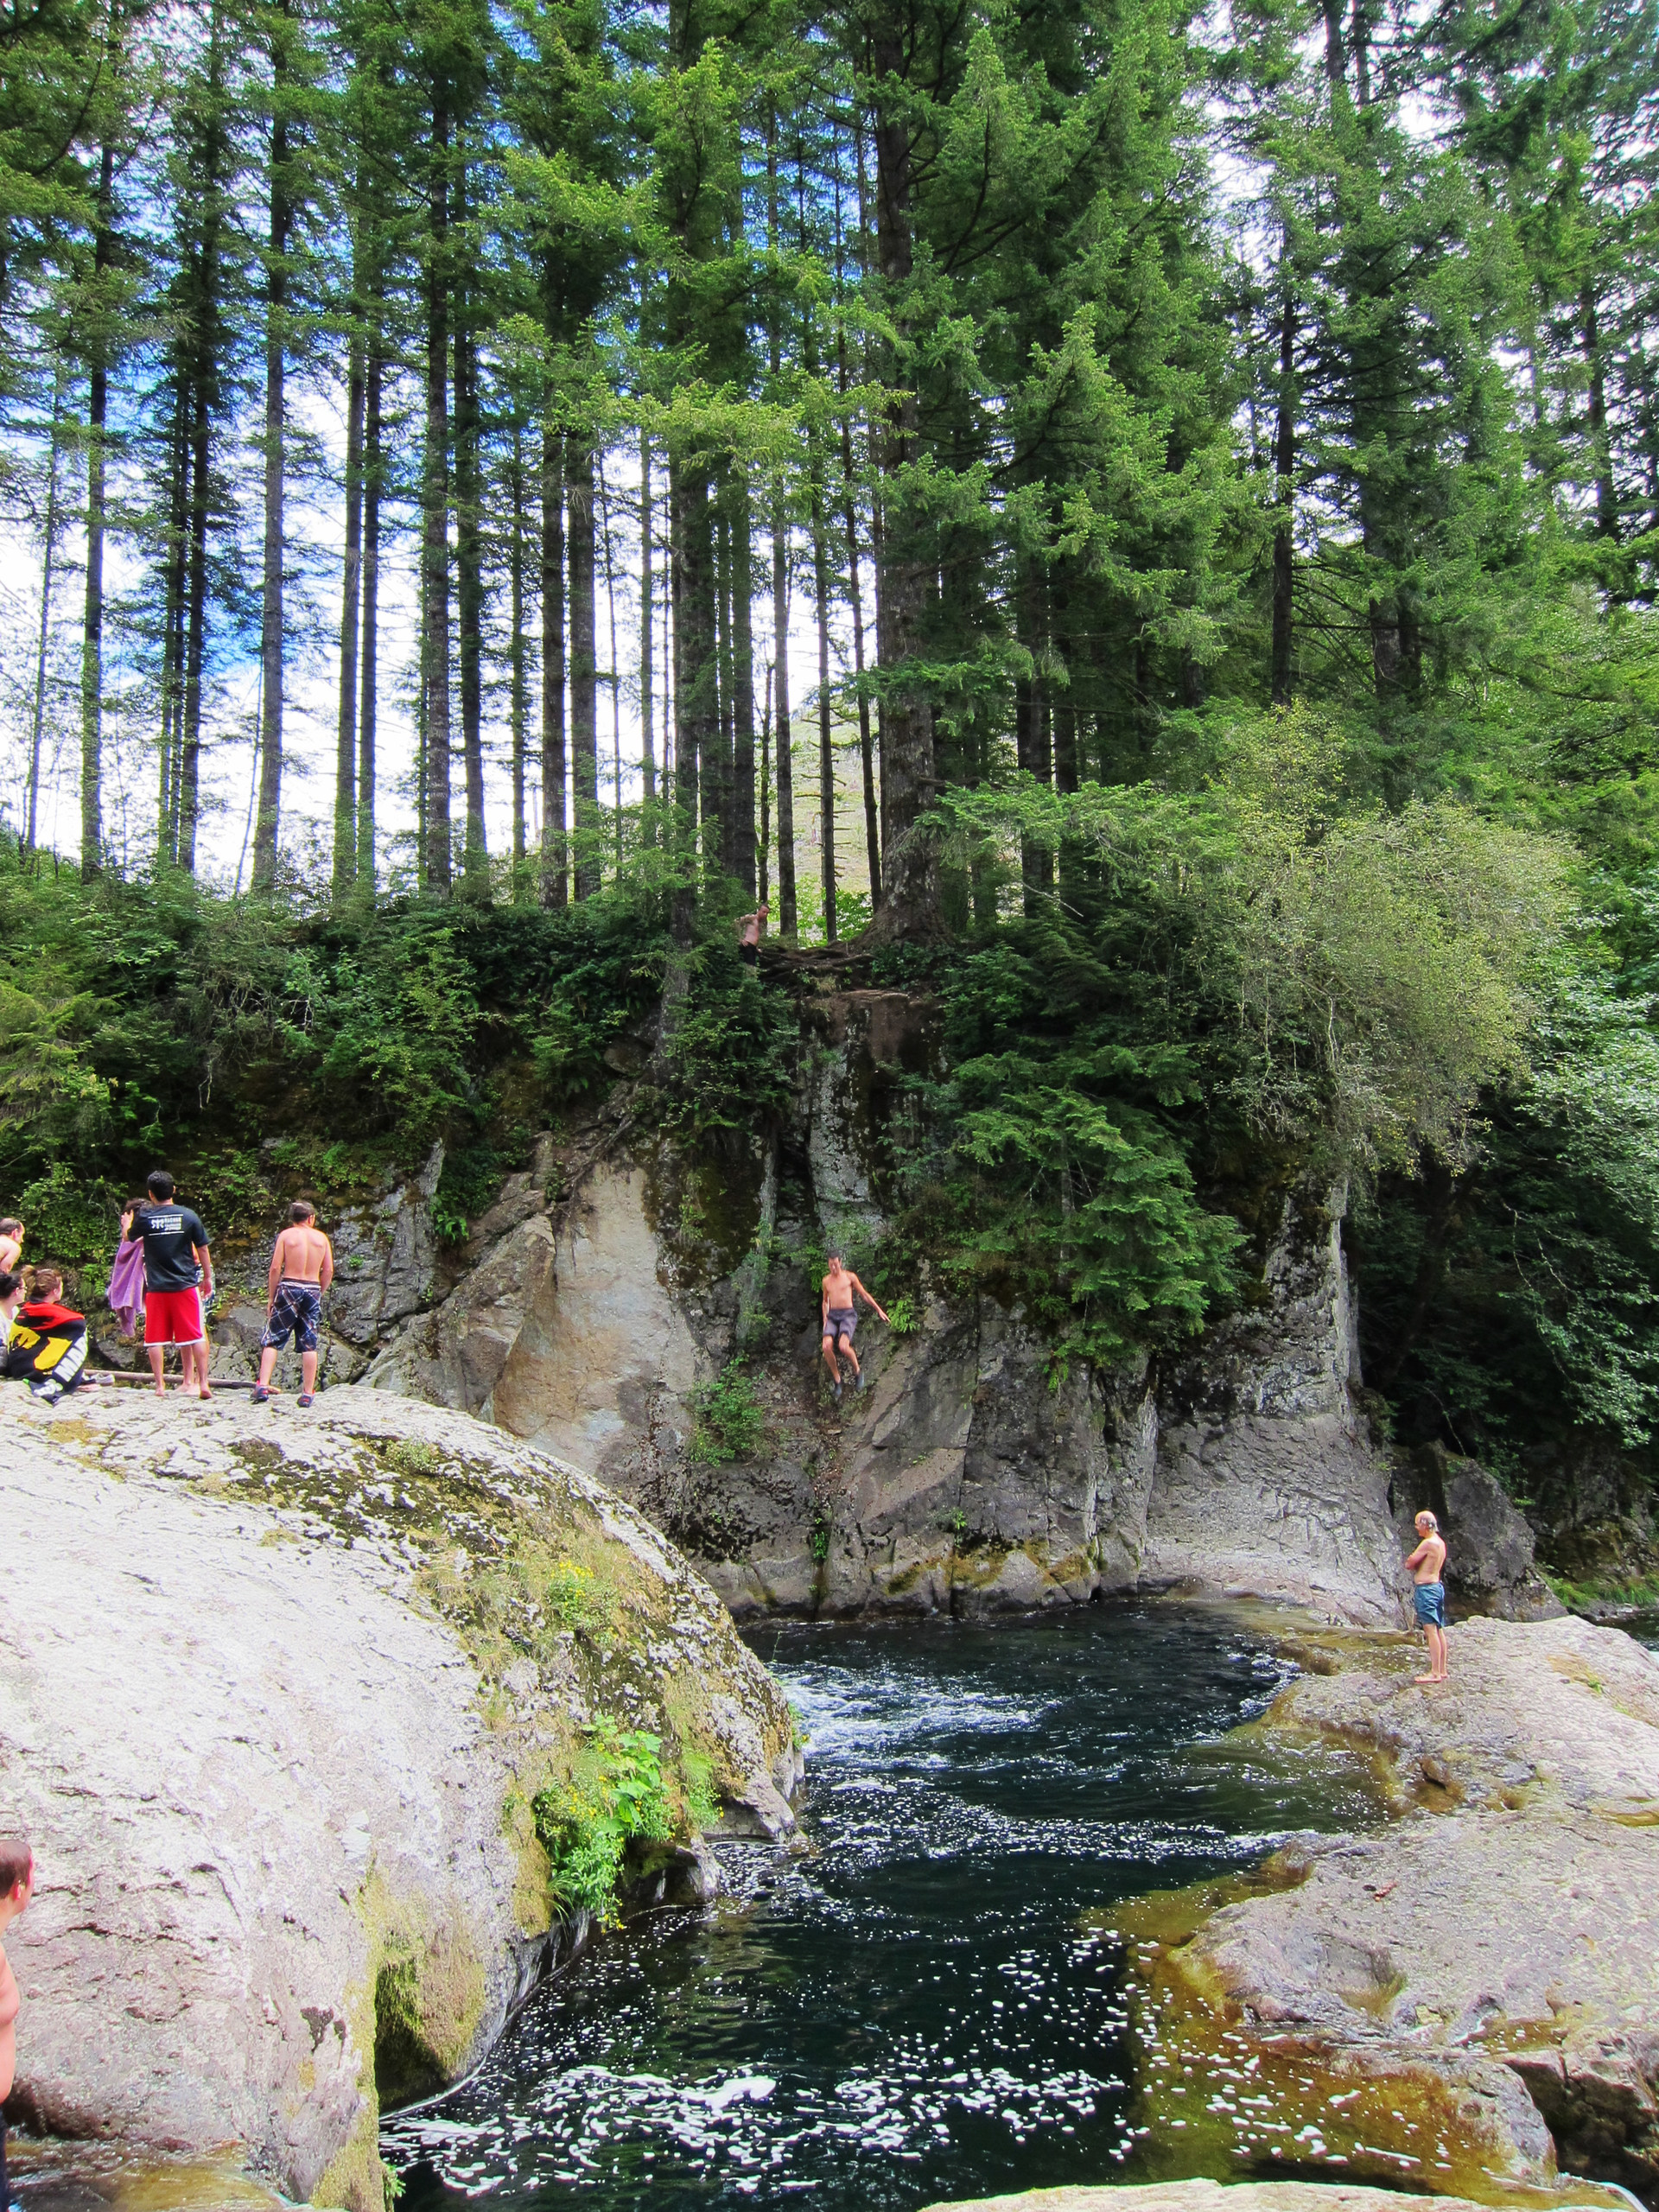 Naked Falls on the Washougal River - 1334.2KB